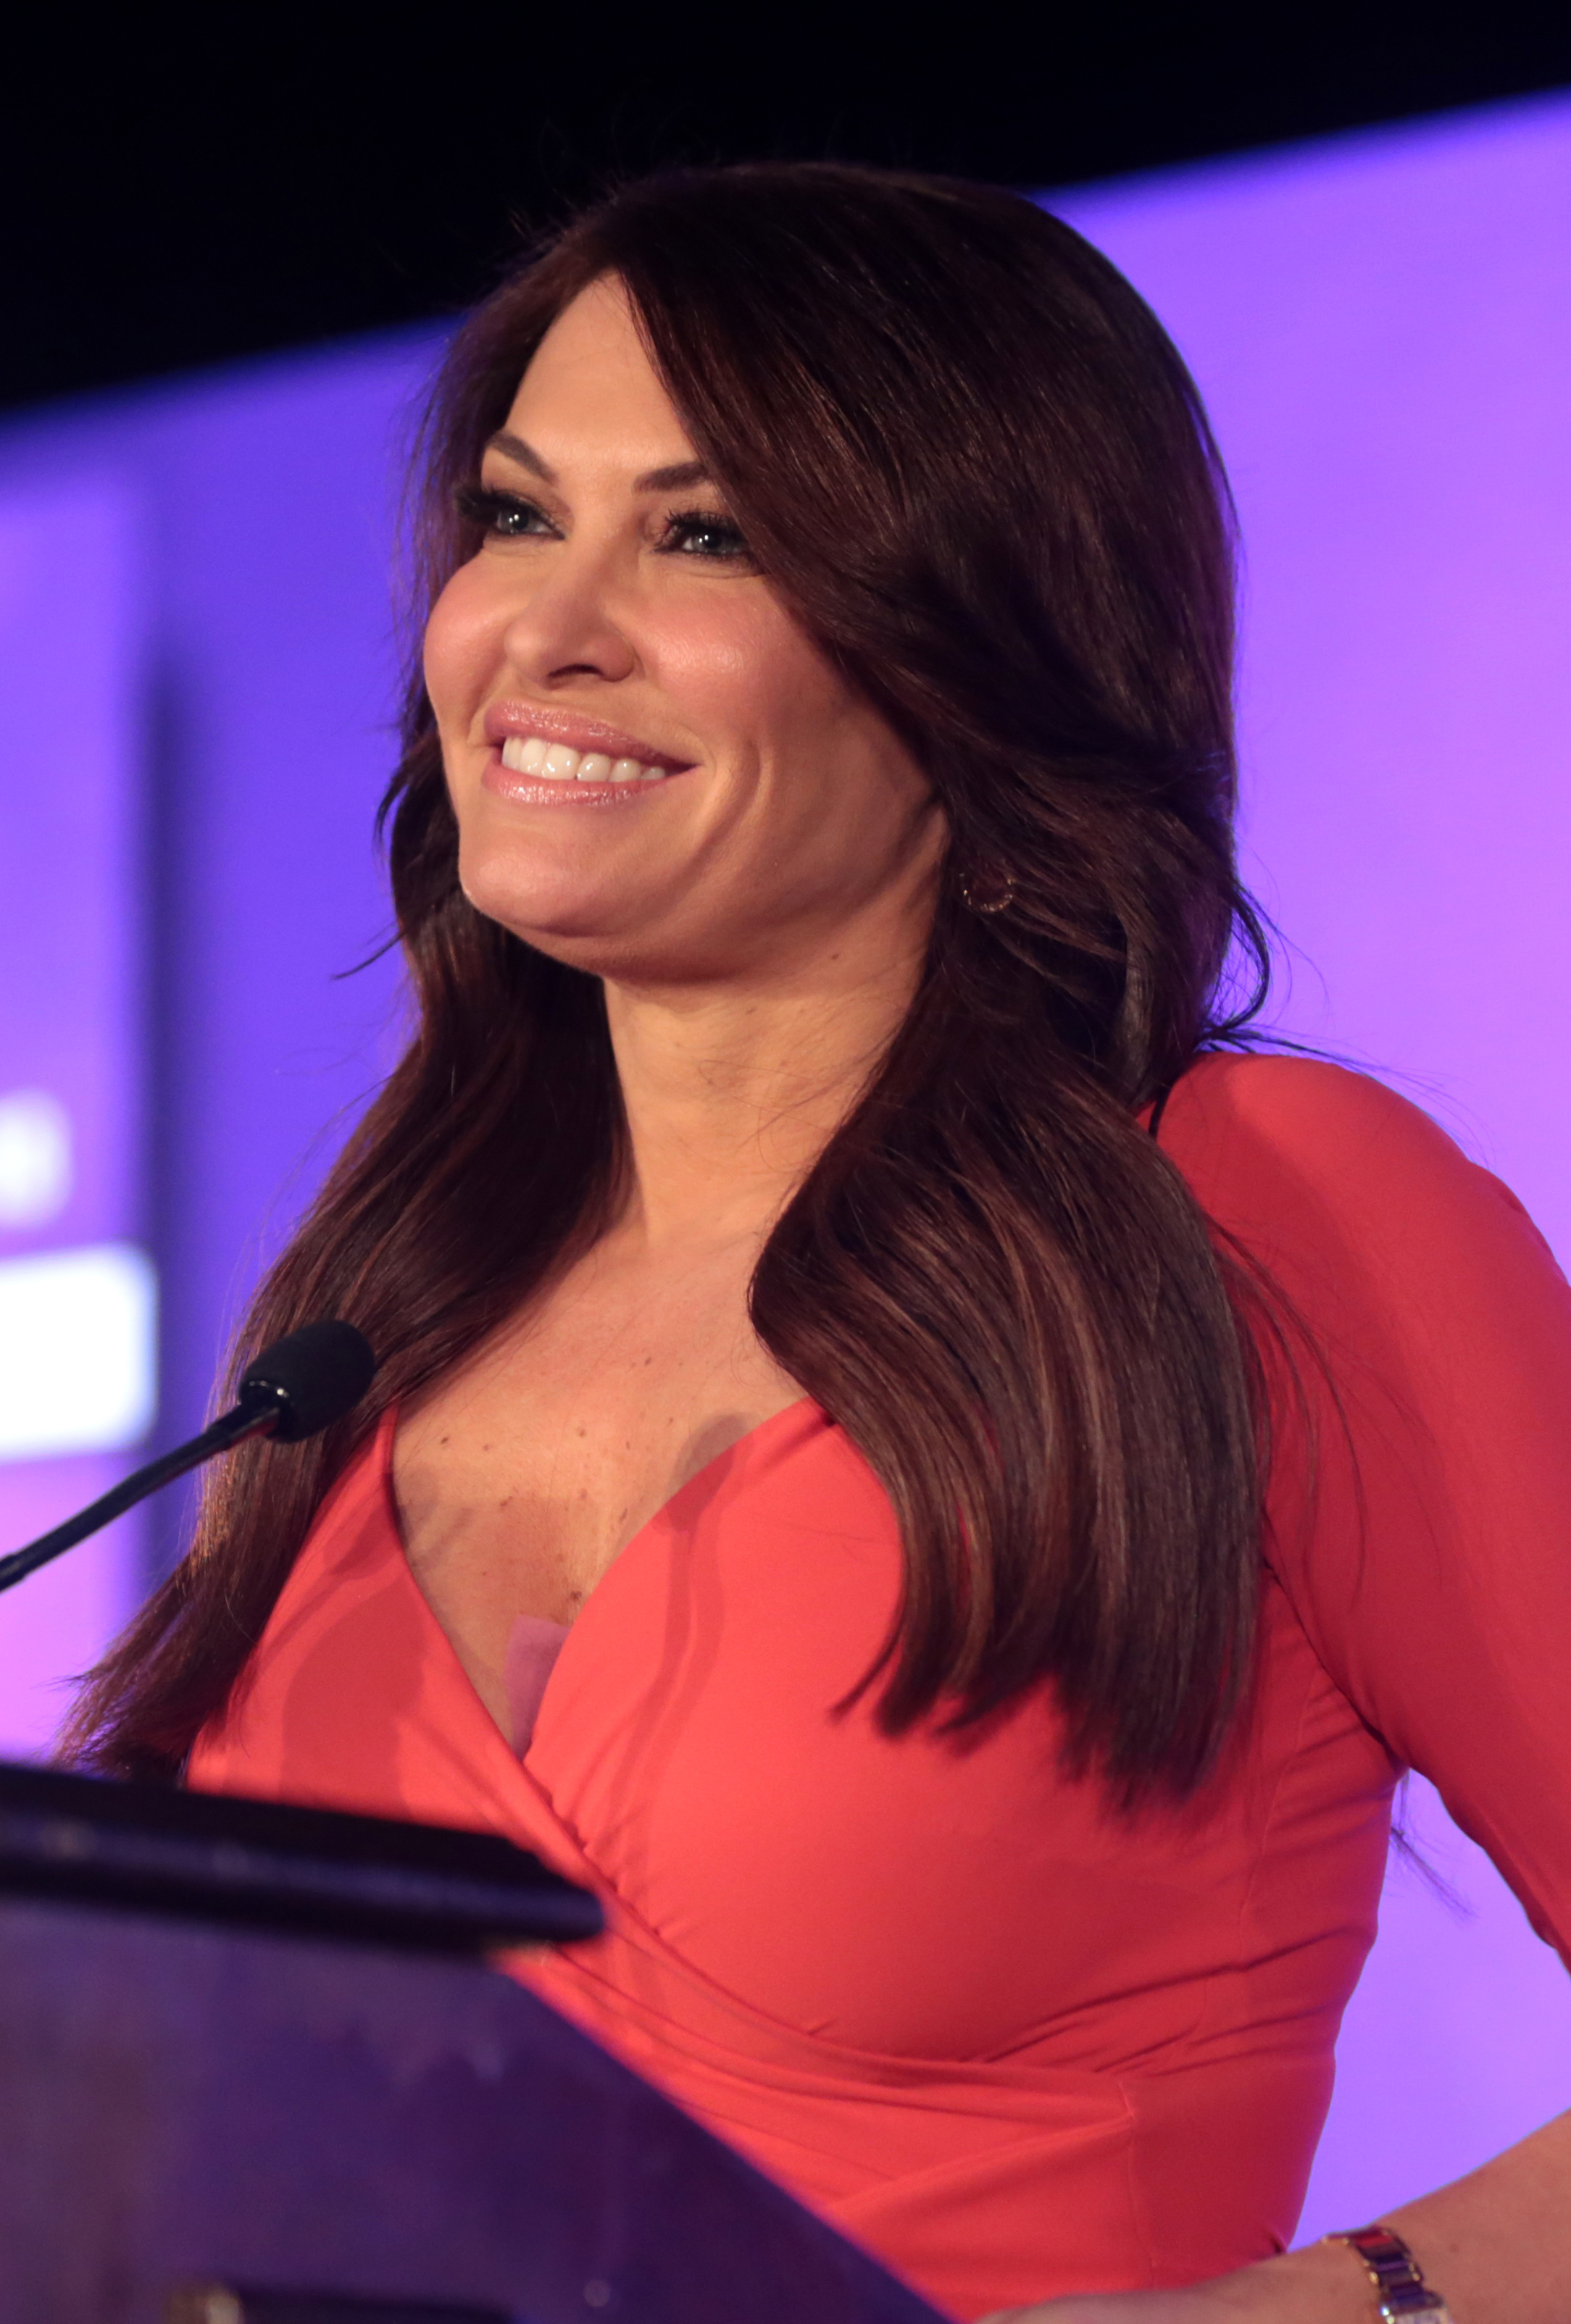 The 49-year old daughter of father (?) and mother(?) Kimberly Guilfoyle in 2018 photo. Kimberly Guilfoyle earned a  million dollar salary - leaving the net worth at 5 million in 2018